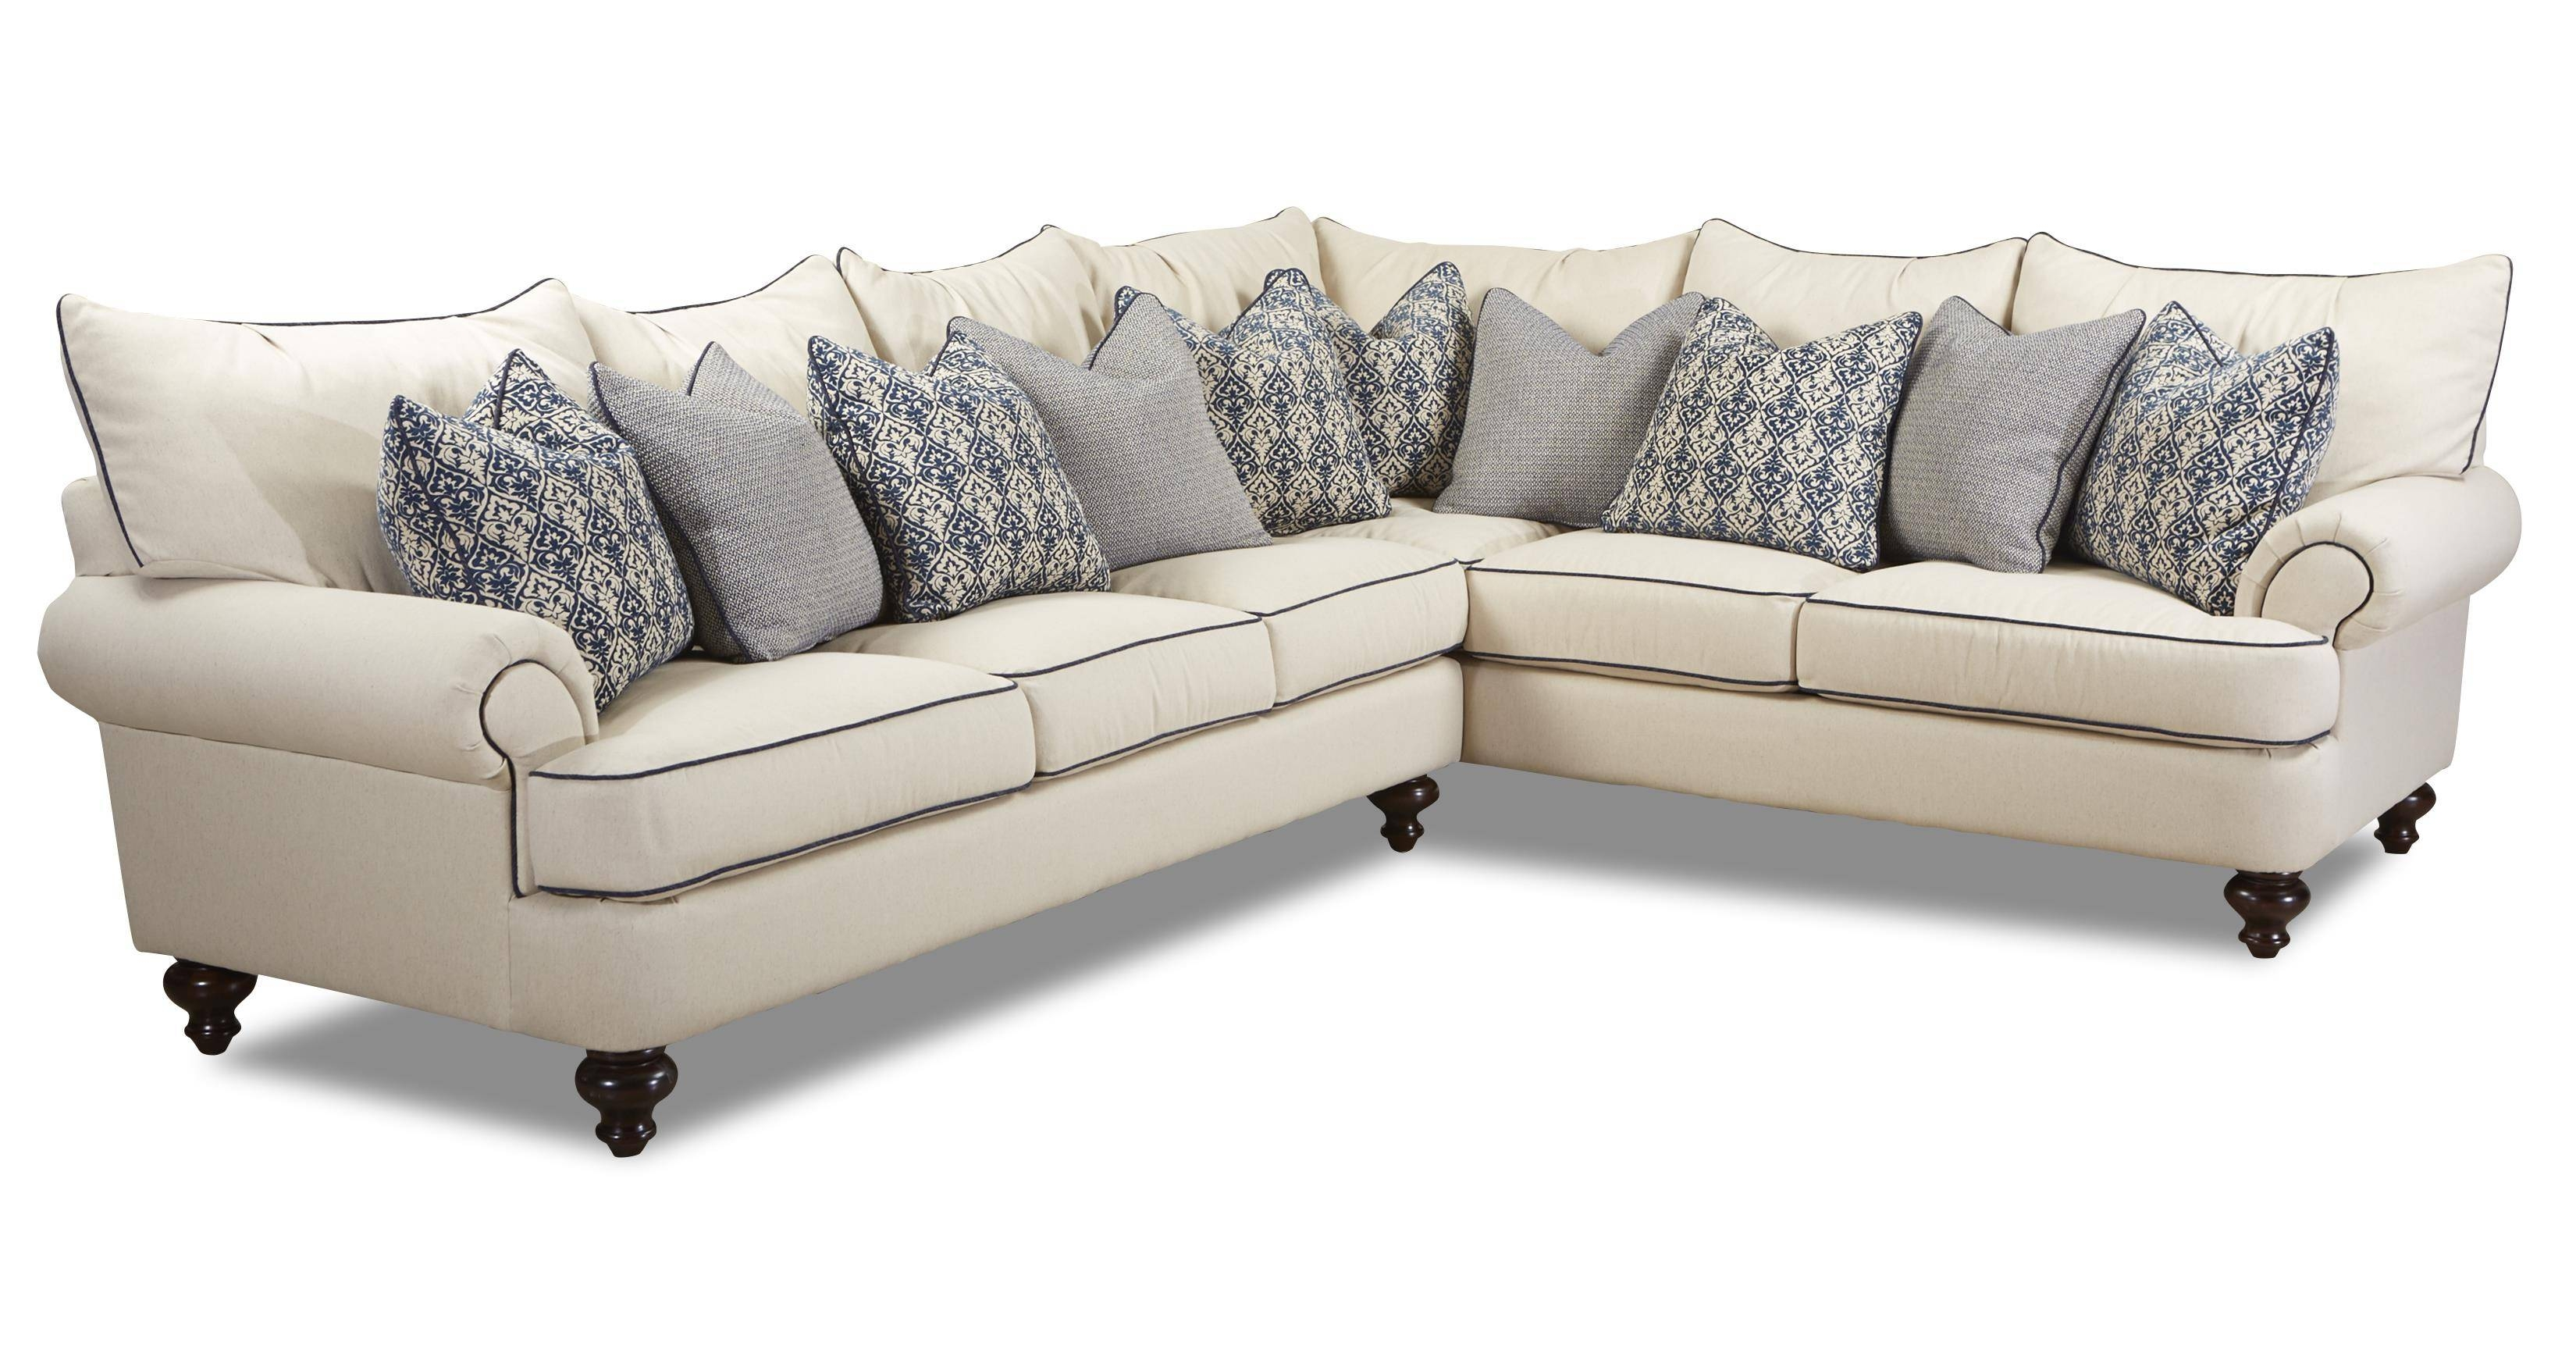 Shabby Chic Sectional Sofaklaussner | Wolf And Gardiner Wolf throughout Shabby Chic Sectional Sofas Couches (Image 13 of 15)